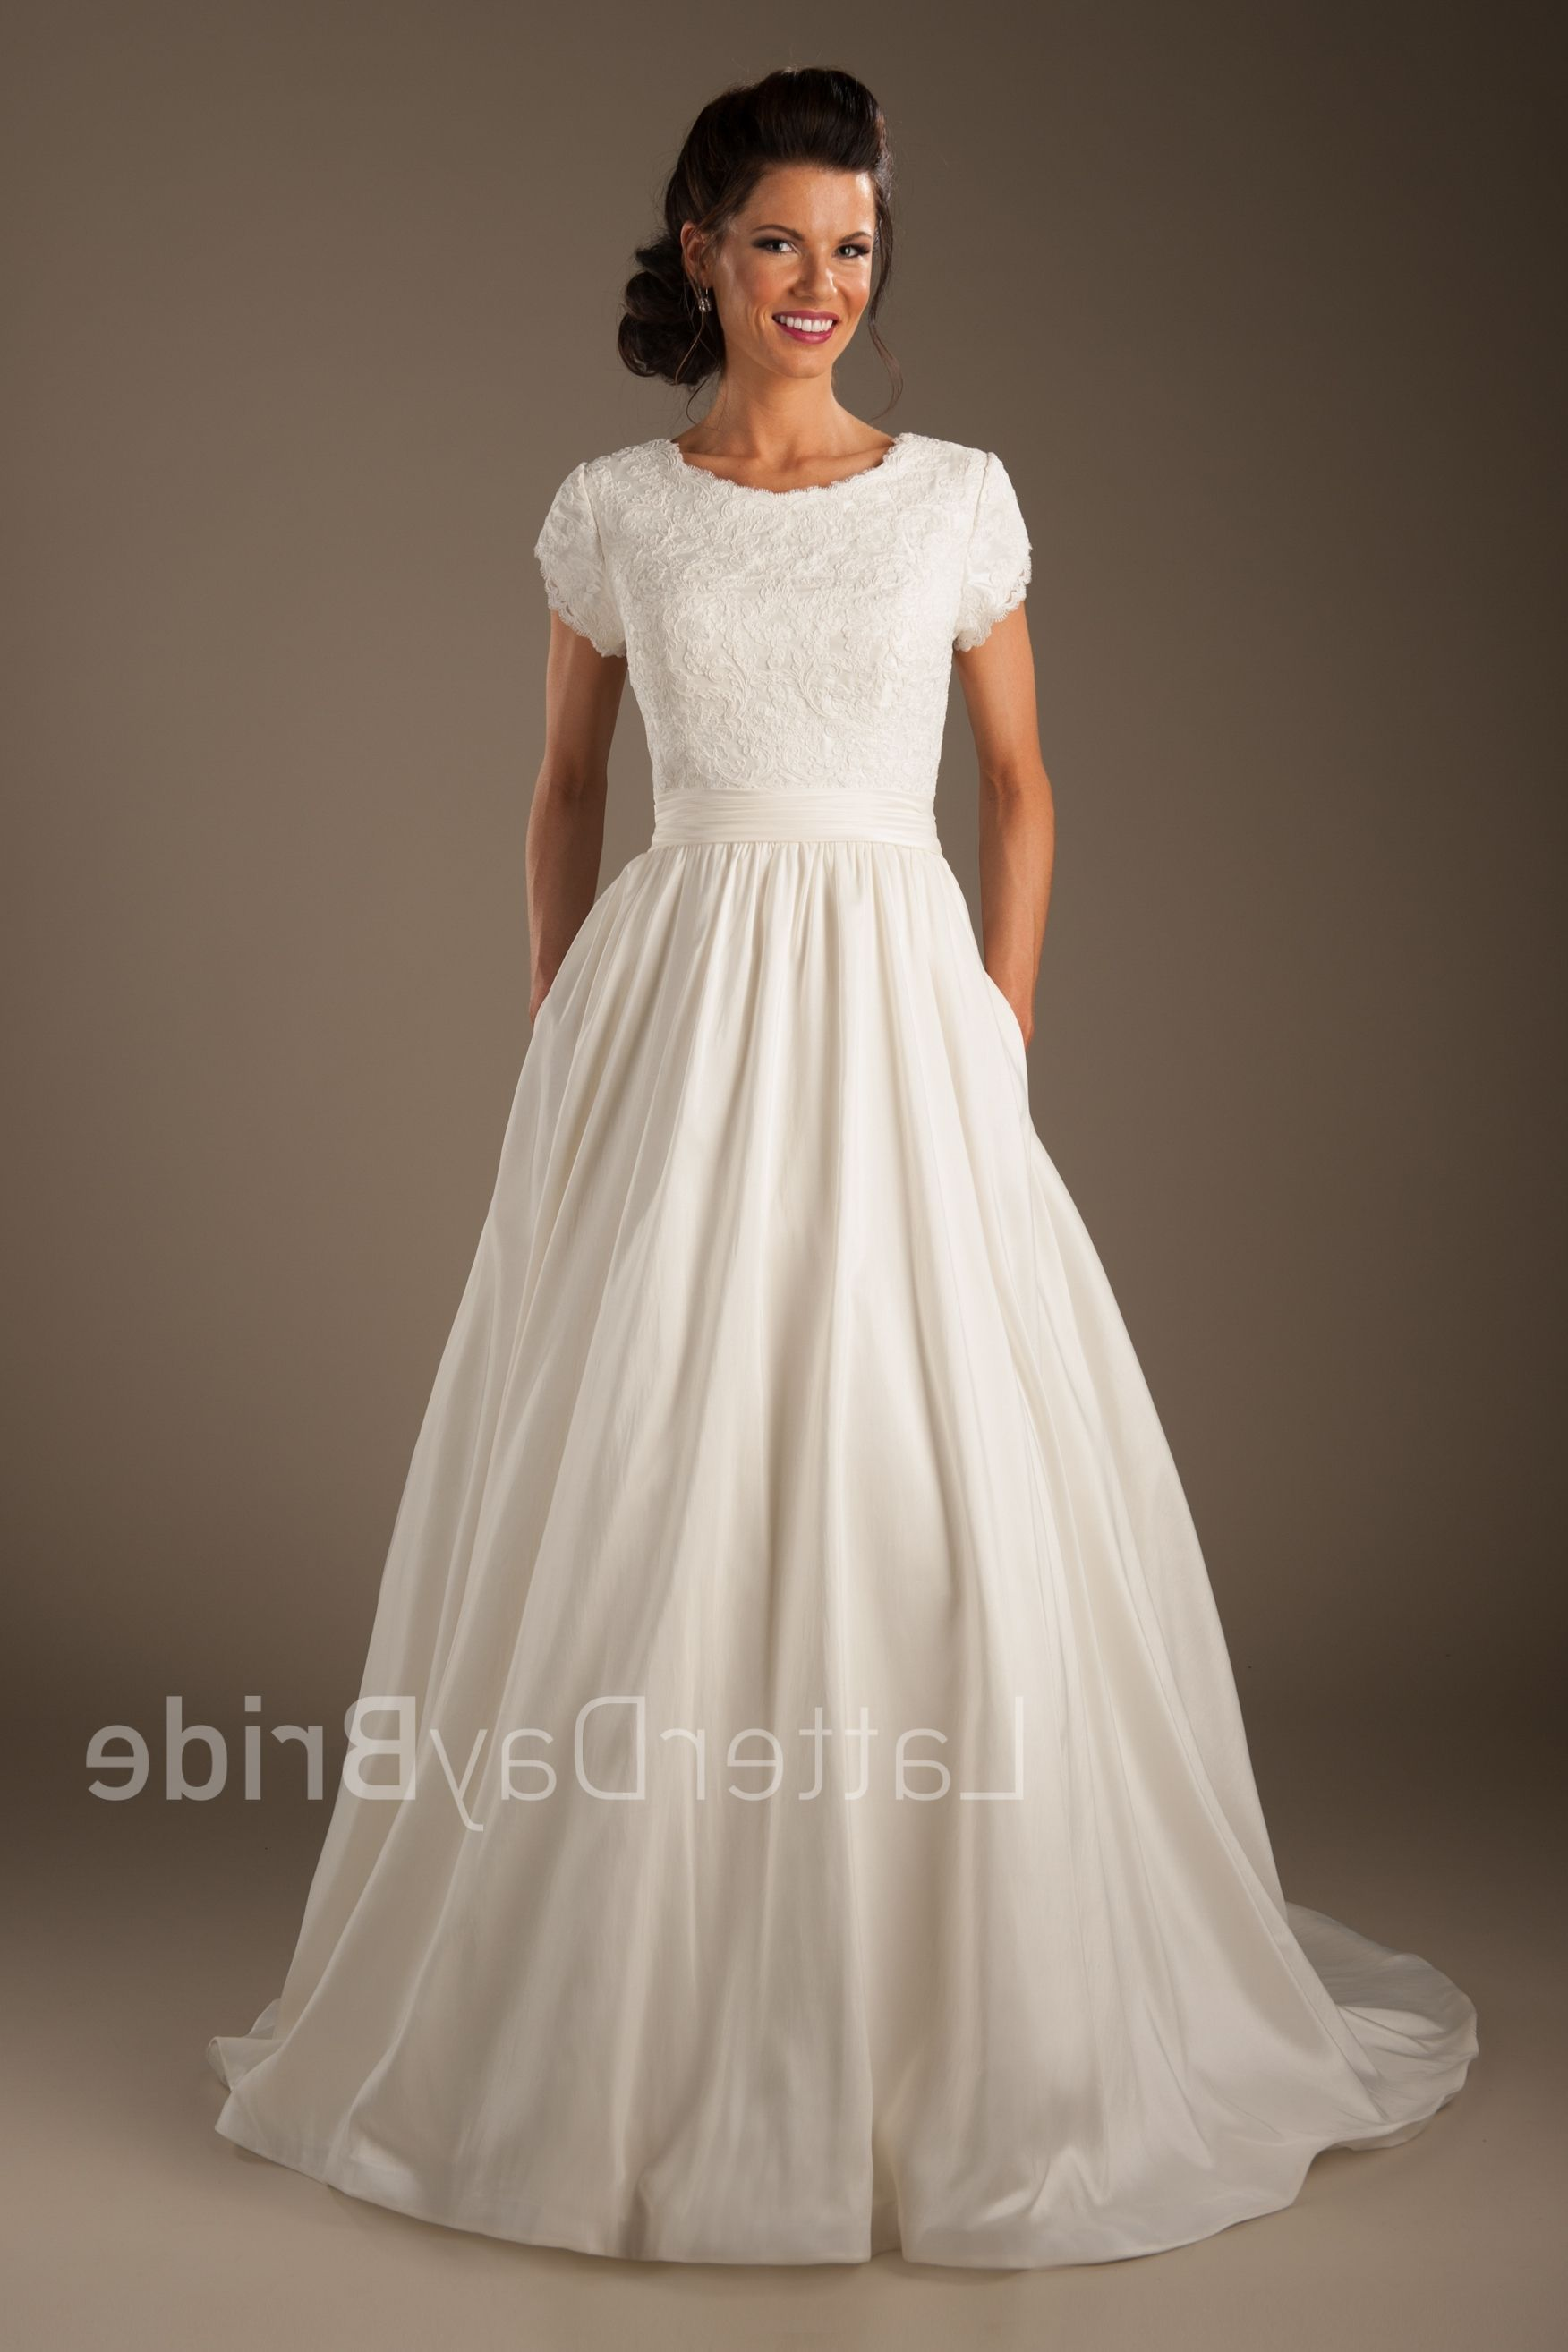 Reasonably Priced Wedding Dresses Brisbane | Wedding Dress ...